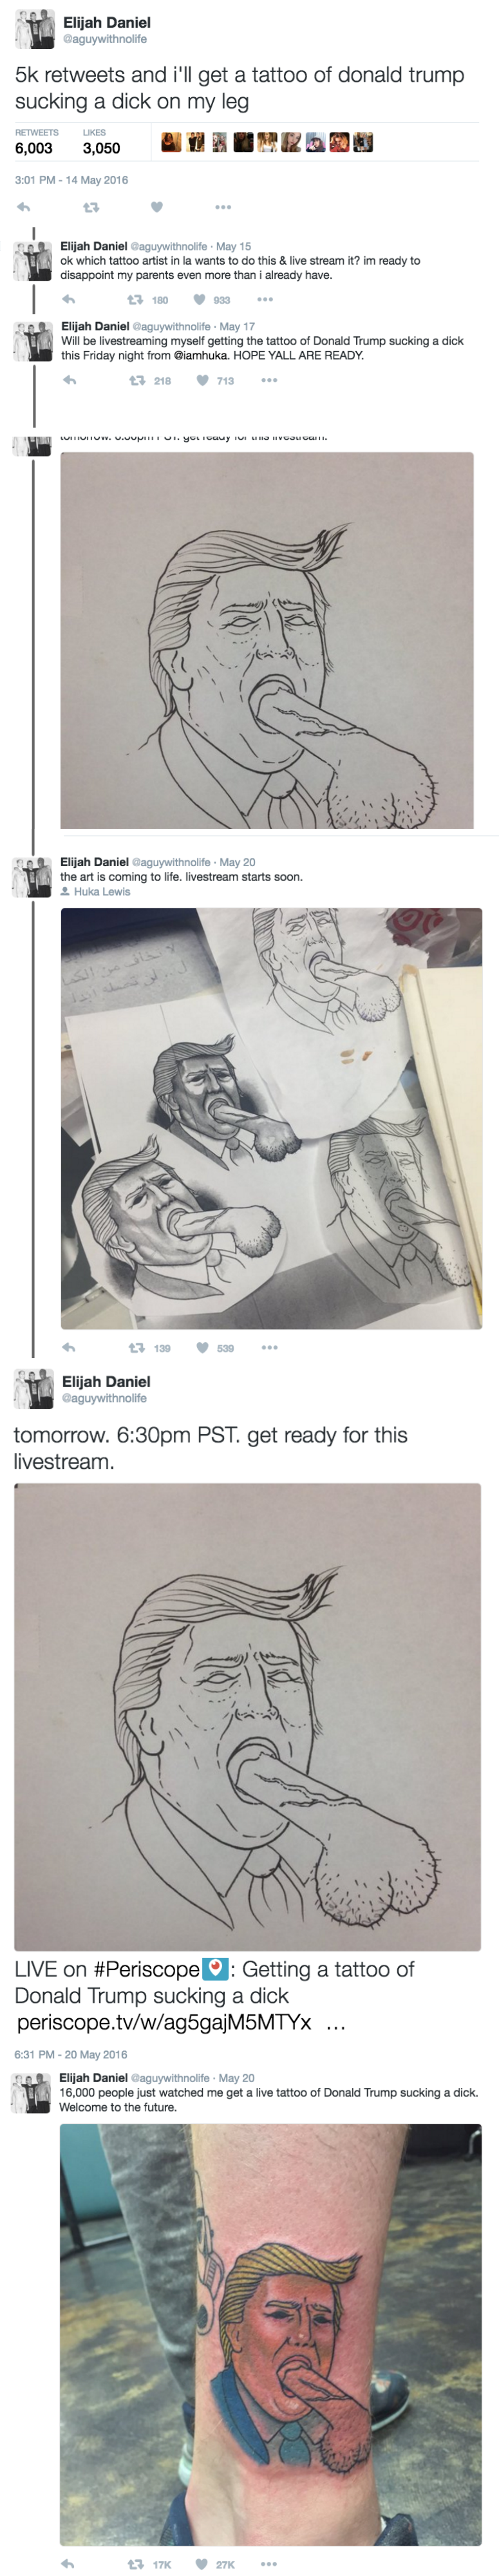 Drawing - Elijah Daniel @aguywithnolife 5k retweets and i'll get a tattoo of donald trump sucking a dick on my leg RETWEETS LIKES 6,003 3,050 3:01 PM-14 May 2016 17 Elijah Daniel @aguywithnolife May 15 ok which tattoo artist in la wants to do this & live stream it? im ready to disappoint my parents even more than i already have. 17 180 933 Elijah Daniel @aguywithnolife May 17 Will be livestreaming myself getting the tattoo of Donald Trump sucking a dick this Friday night from @iamhuka. HOPE YALL